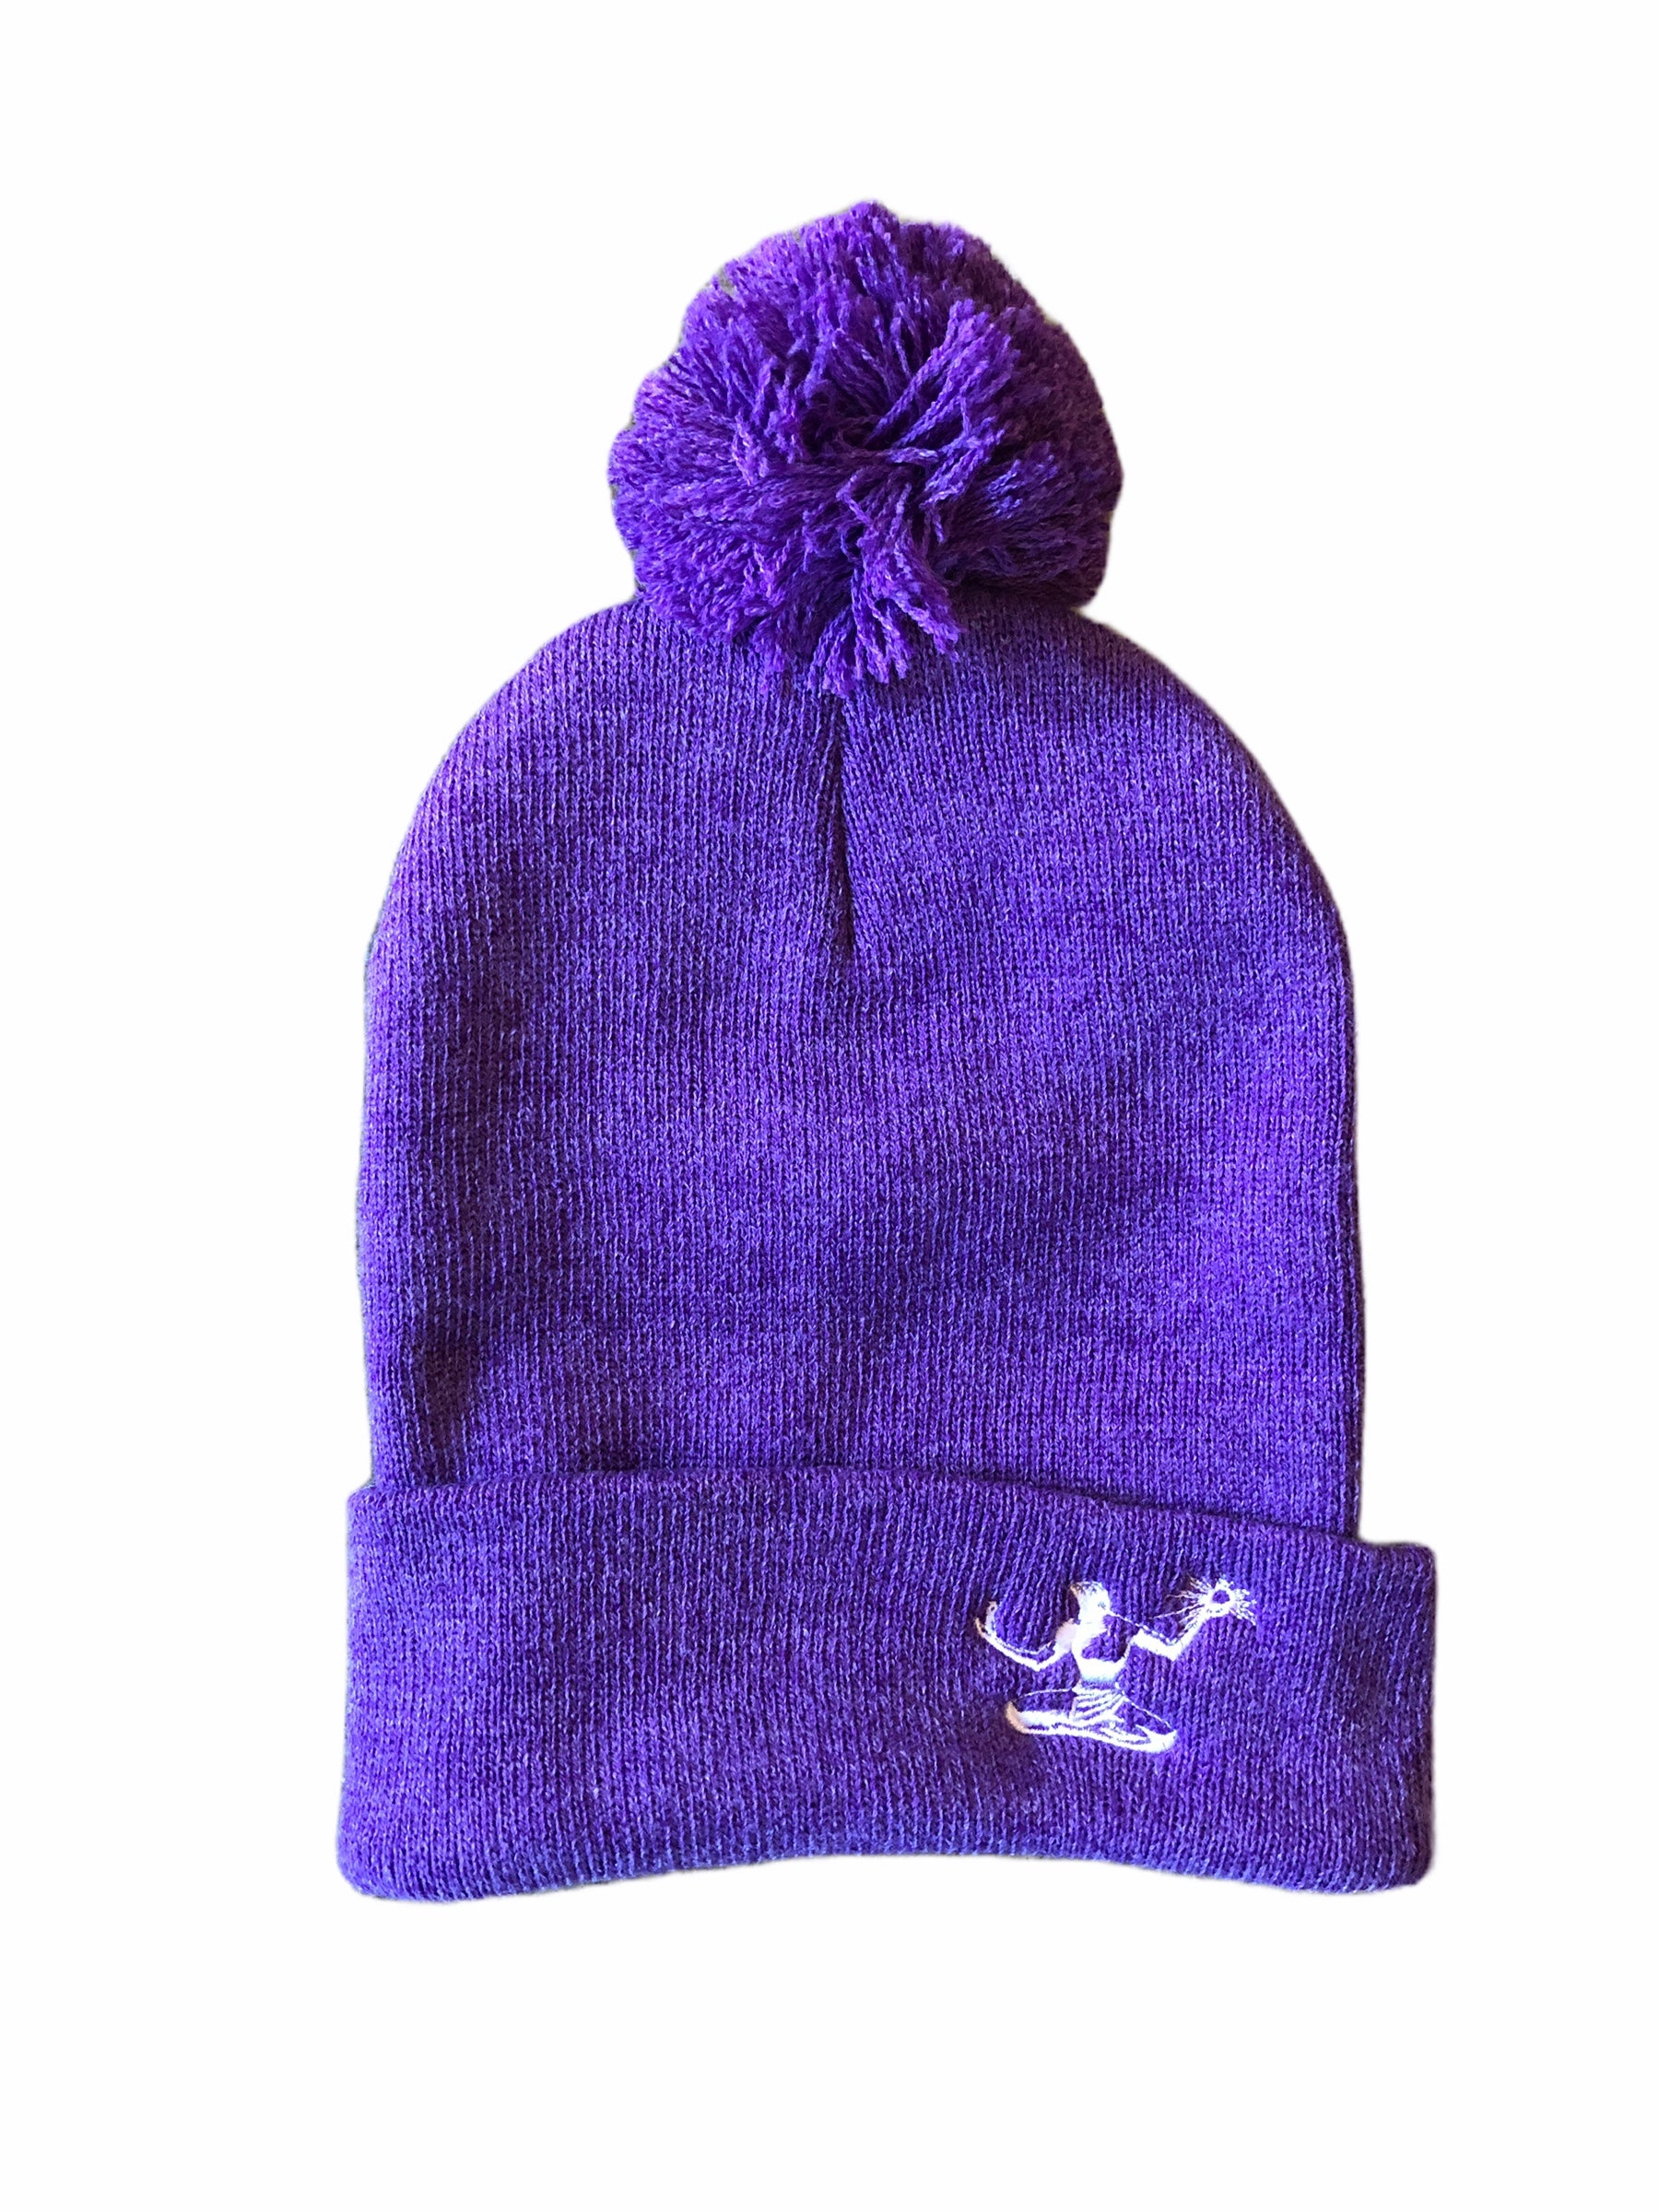 Spirit of Detroit Pom Pom Knit Cuffed Beanie / Heather Purple - Pure Detroit